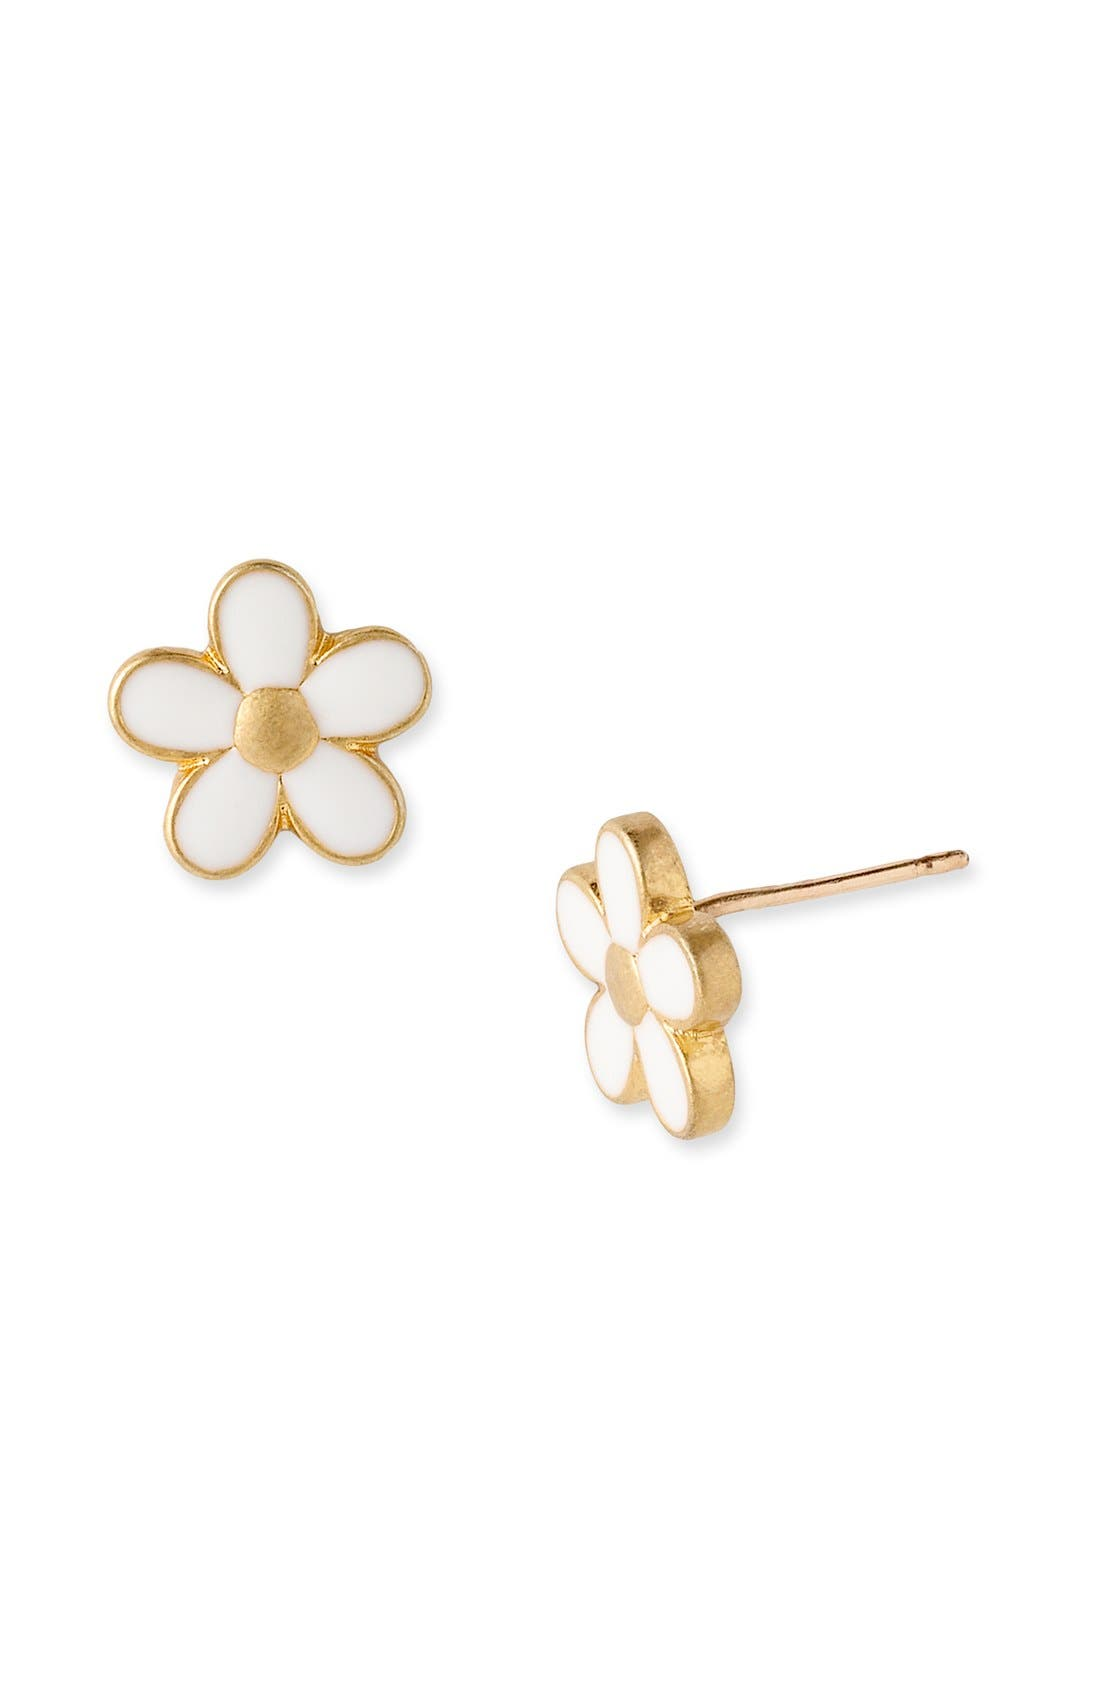 Main Image - MARC BY MARC JACOBS 'Daisy Chain' Small Stud Earrings